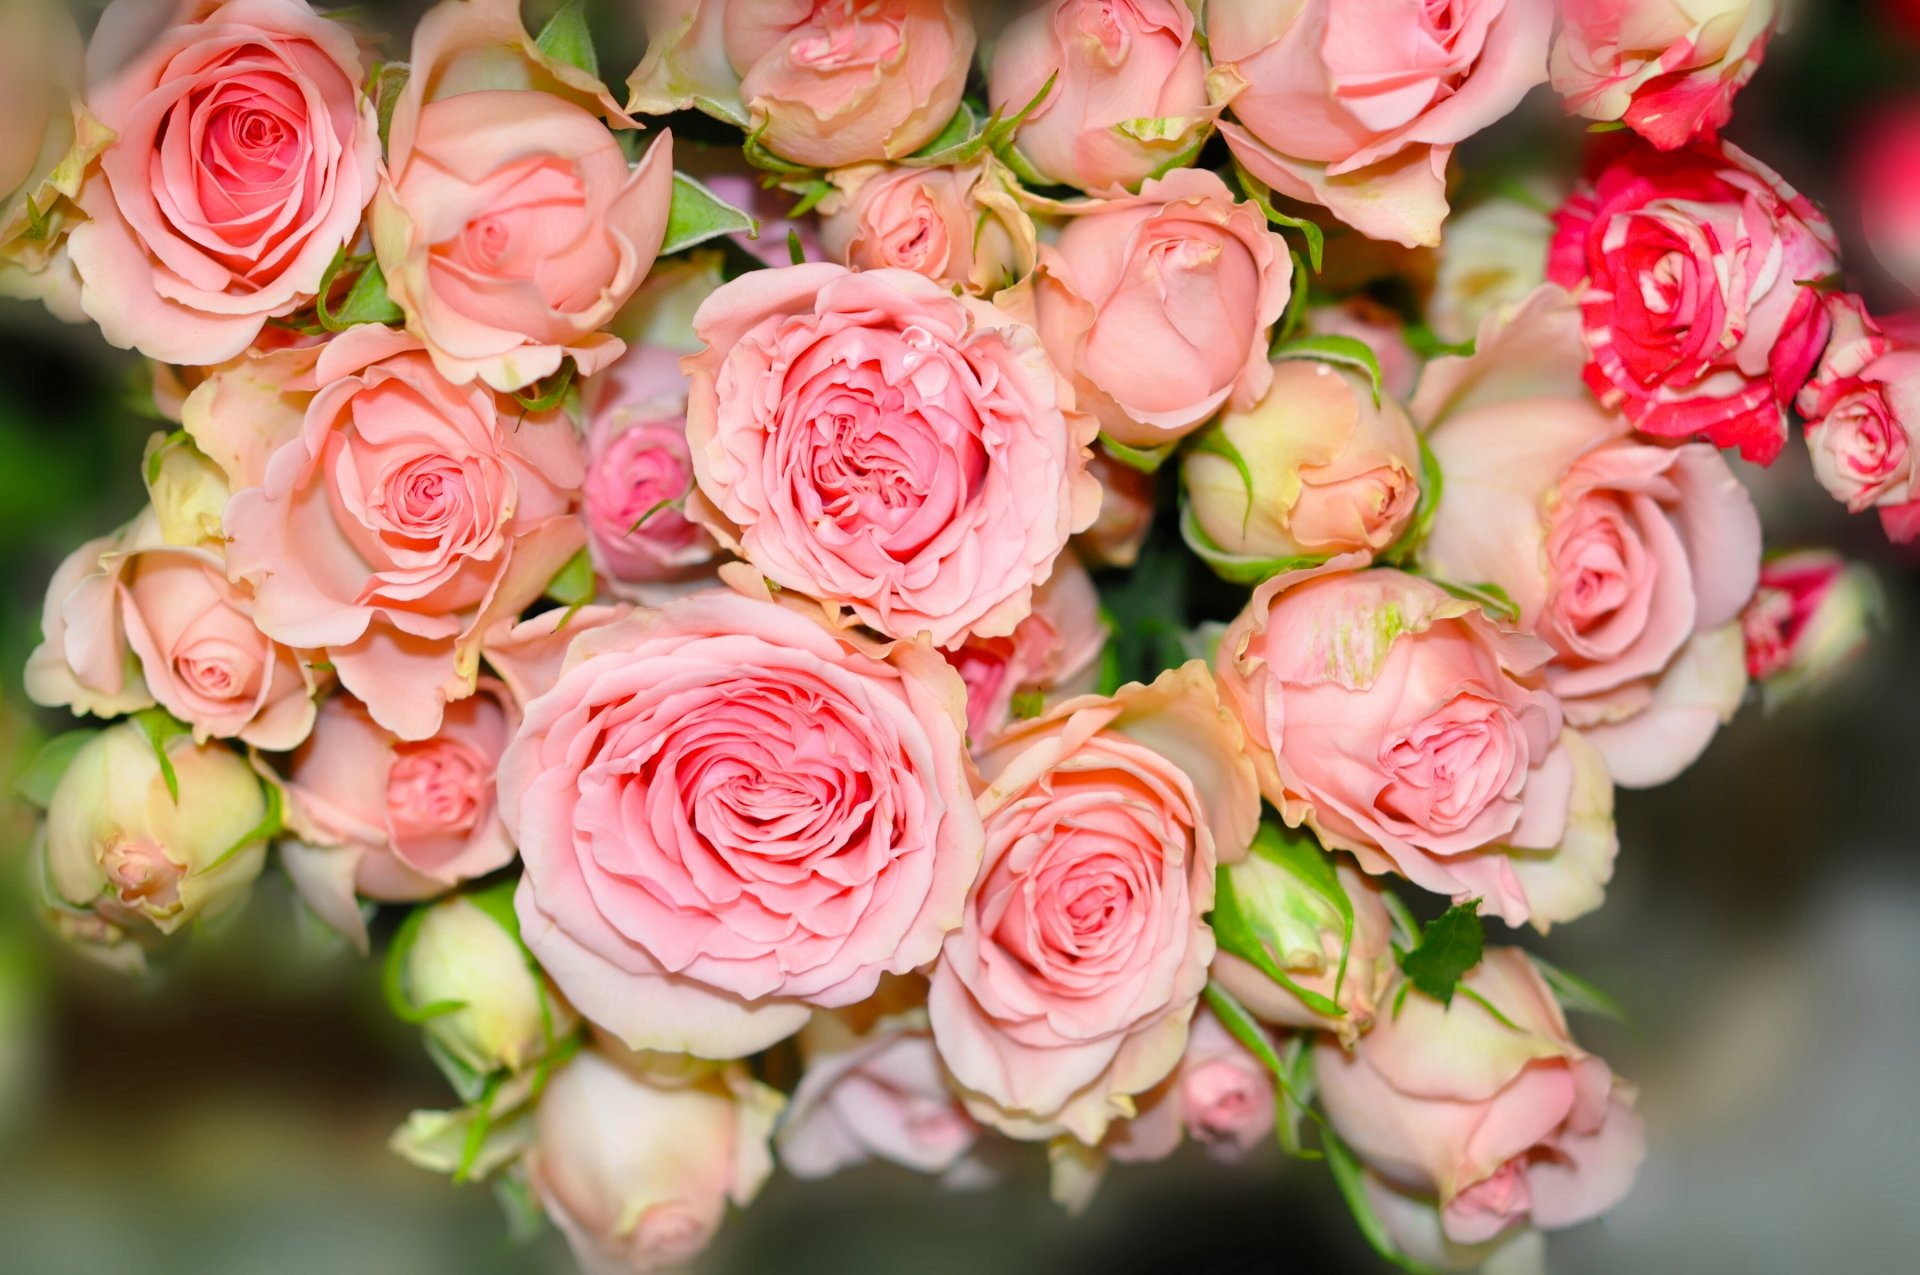 How to Make Bridal Bouquets (with Pictures) - wikiHow Pictures of pink rose bouquets